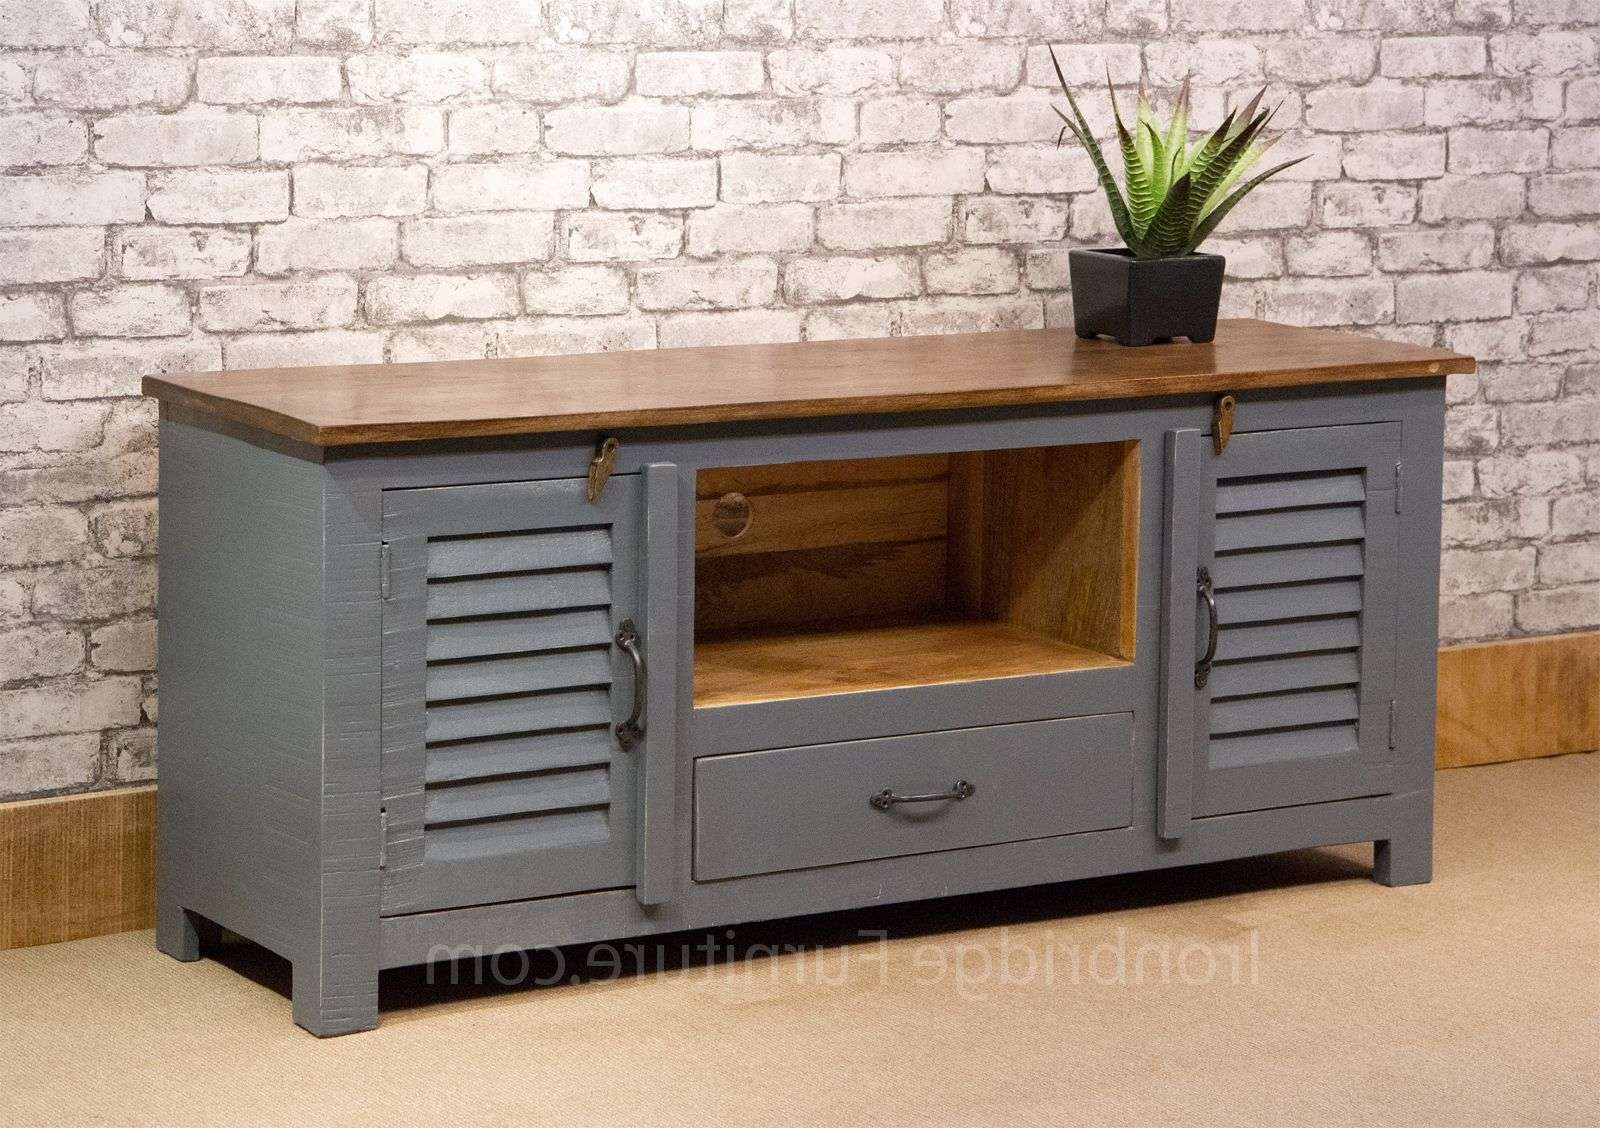 Si 518 Vintage Style Painted Long Tv Cabinet – Dusky Grey Inside Vintage Style Tv Cabinets (View 6 of 20)